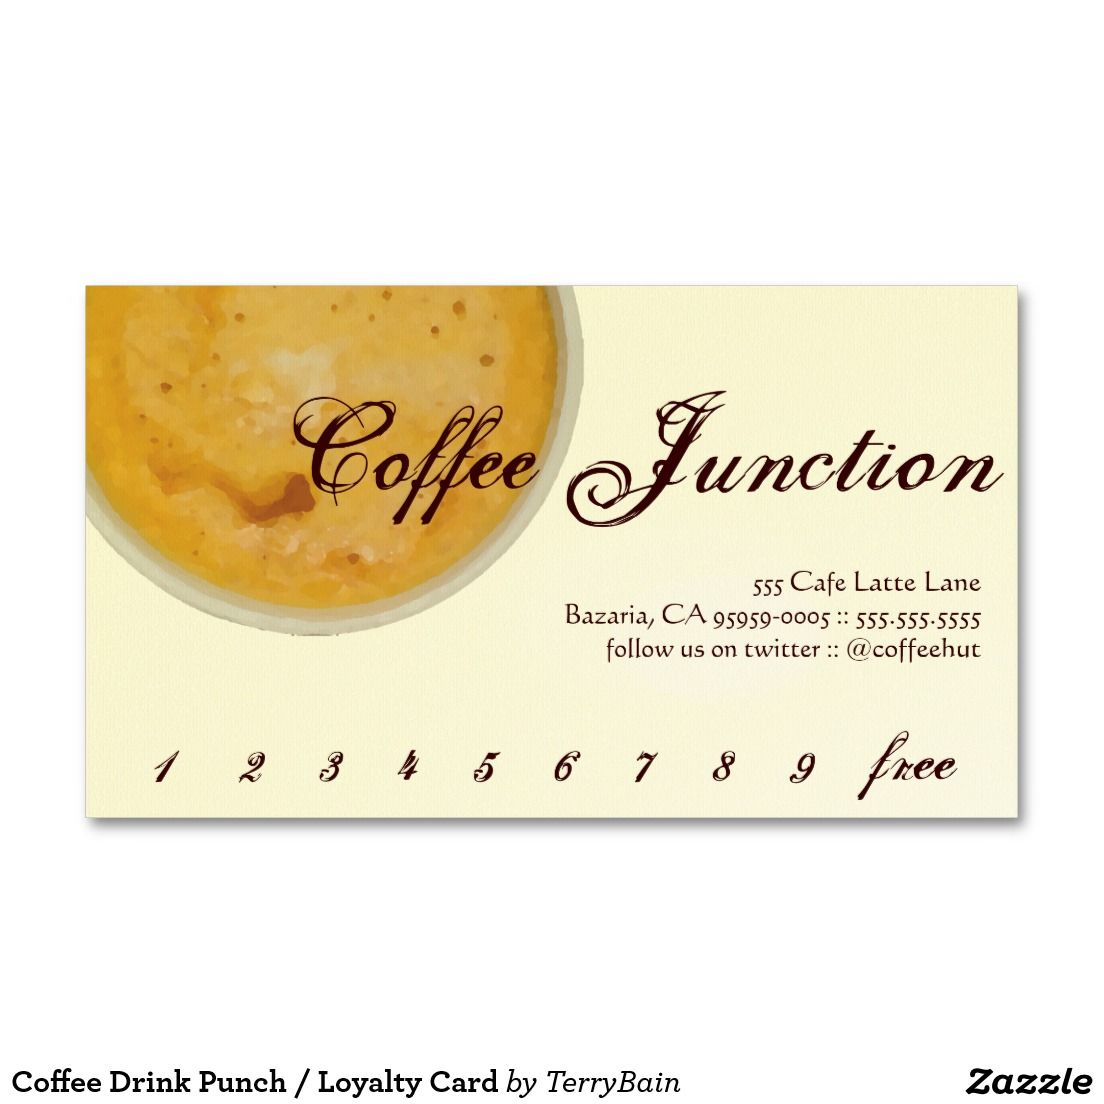 Coffee Drink Punch / Loyalty Card Business Card | Loyal to Coffee ...